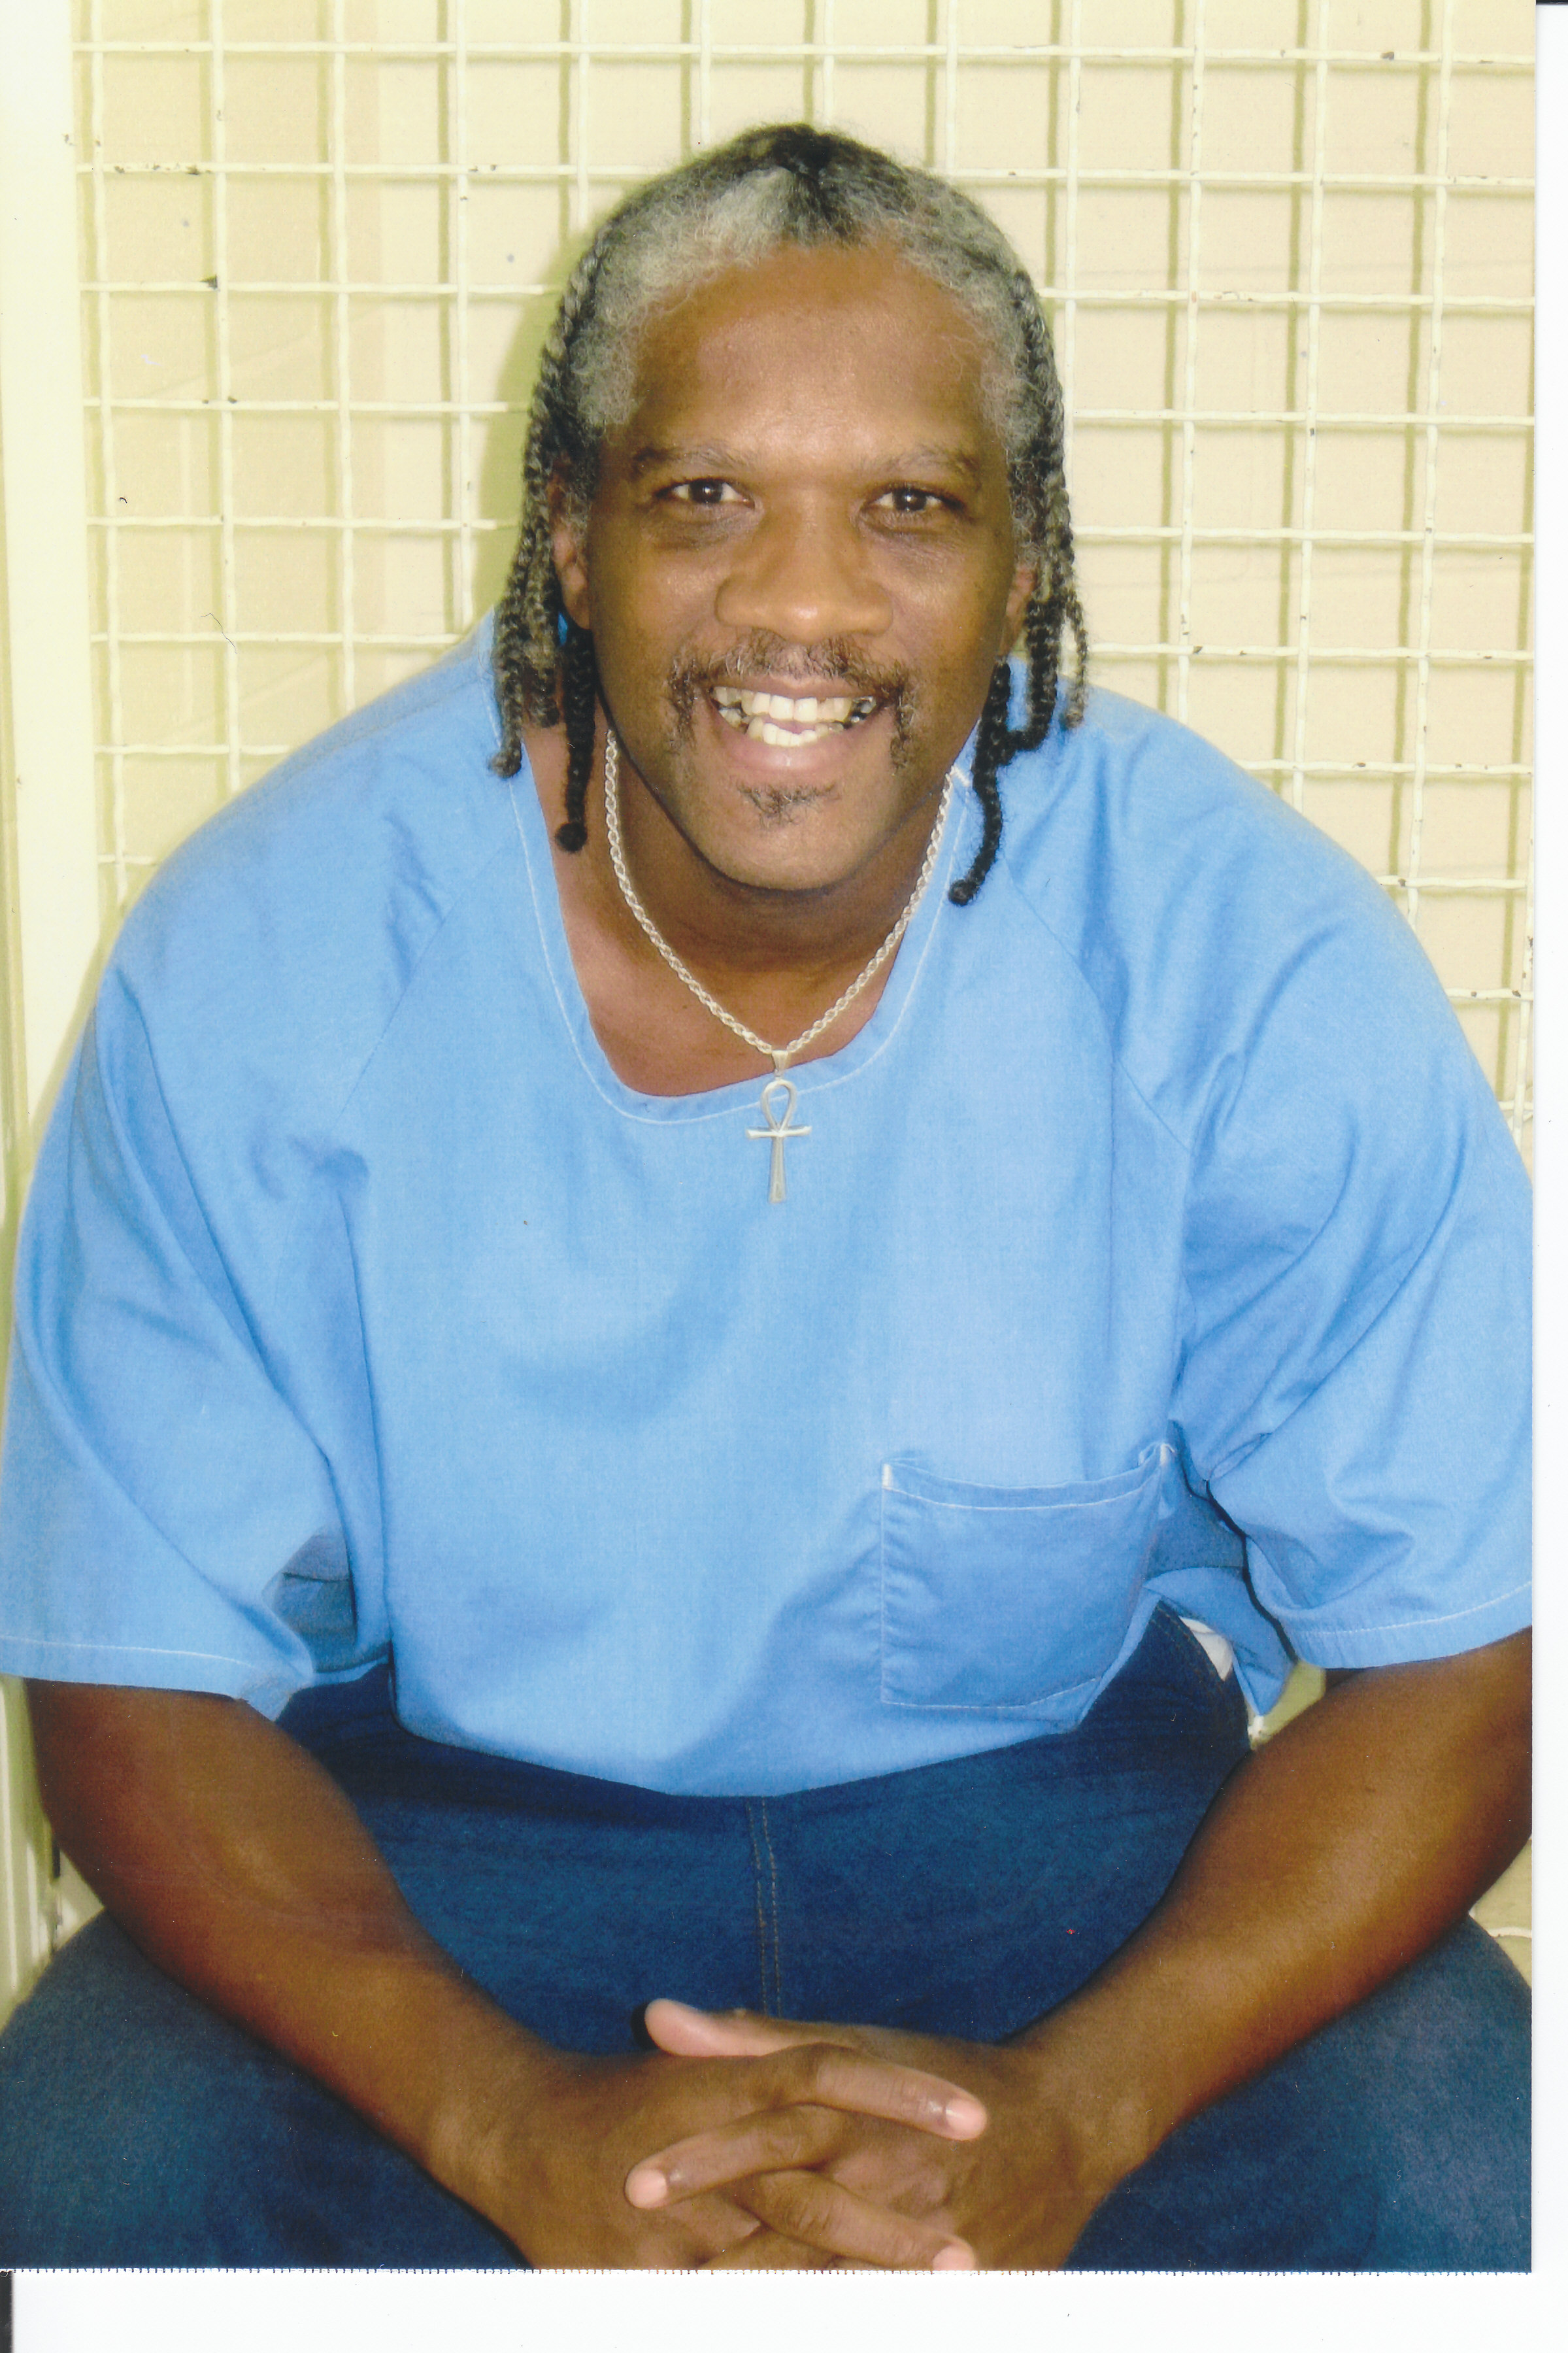 Kevin Cooper was convicted in 1985 of stabbing to death two adults and